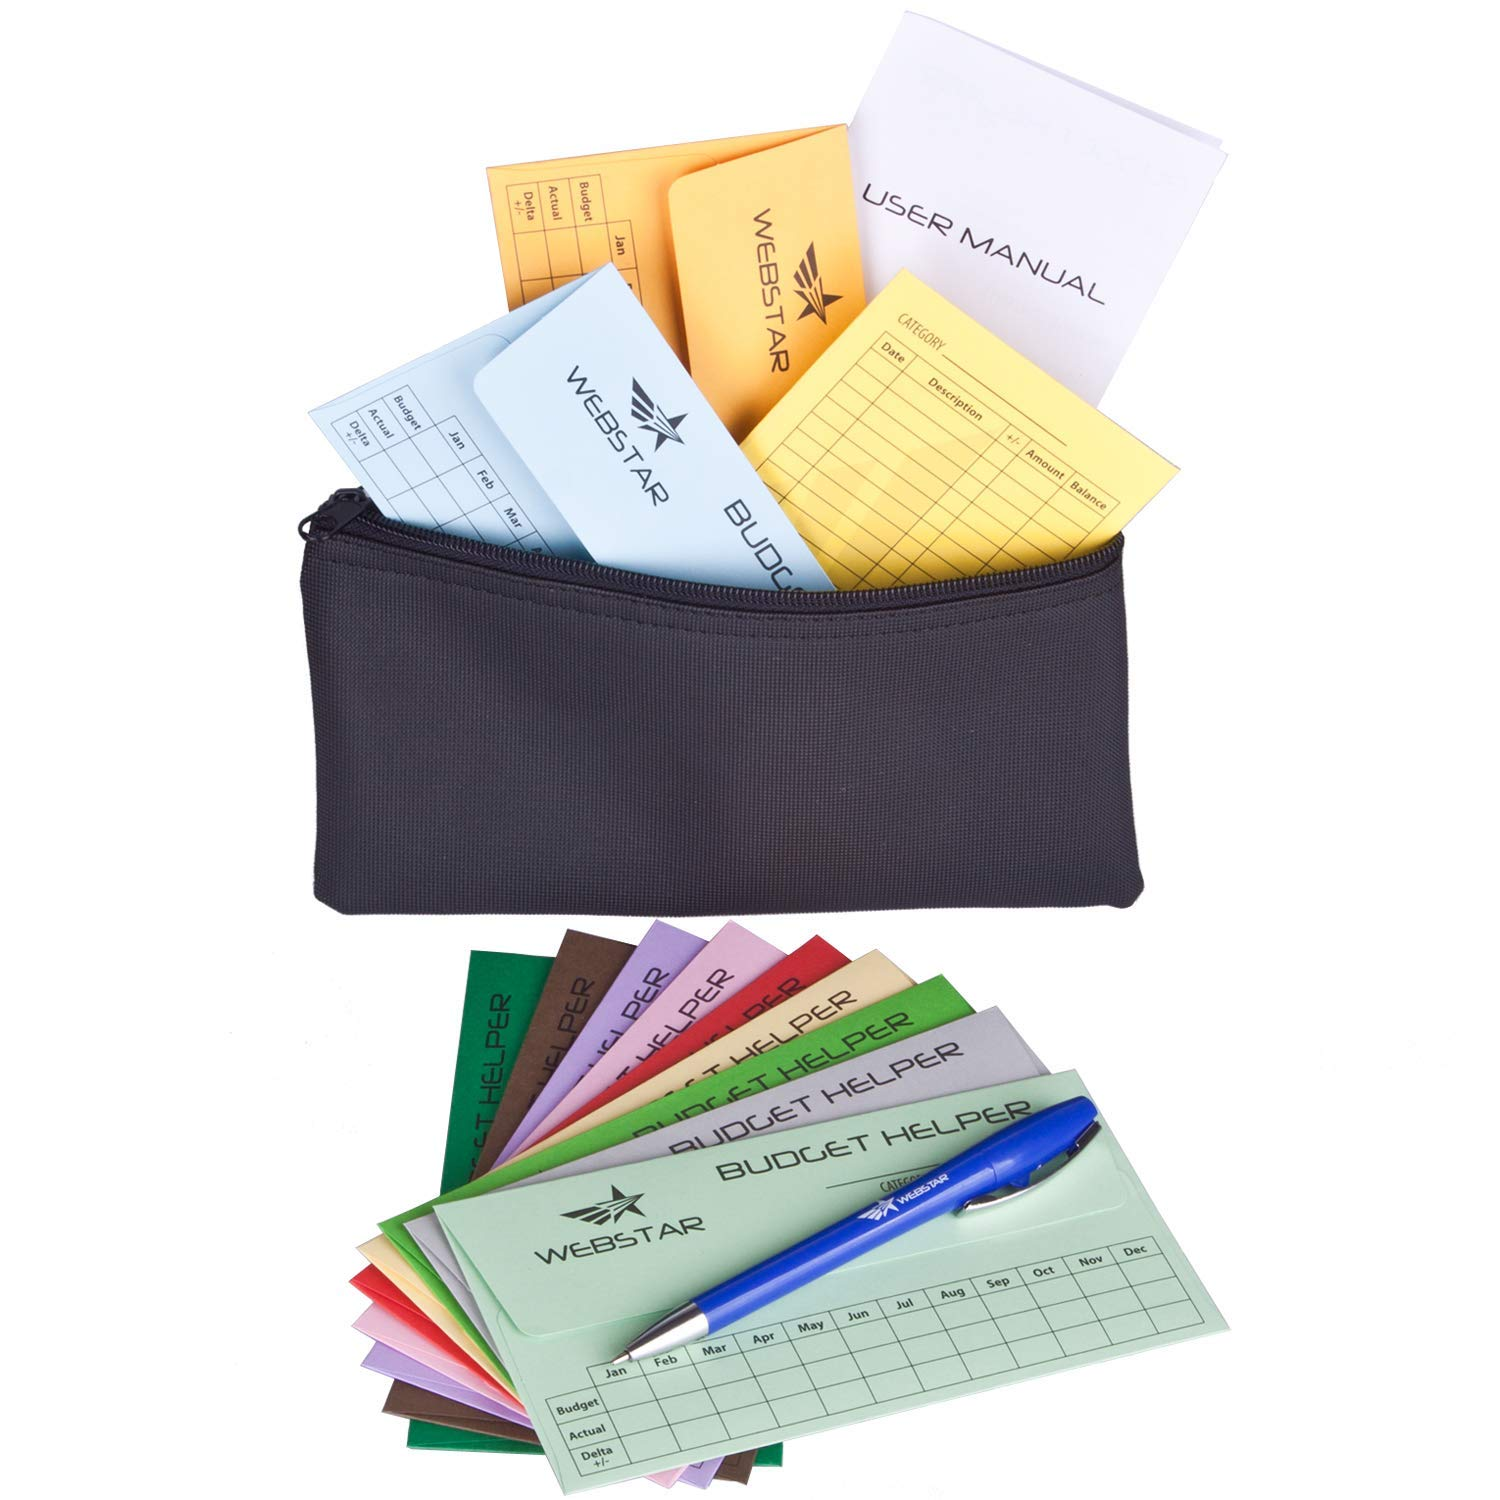 Webstar Cash Envelopes Budget System - Budget Helper 12 Pack Different Colors, Bonus Money Wallet and Pen, Tear & Water Resistant, Can Be Used As Bills Coupon Receipt Coin Holder Planner Organizer